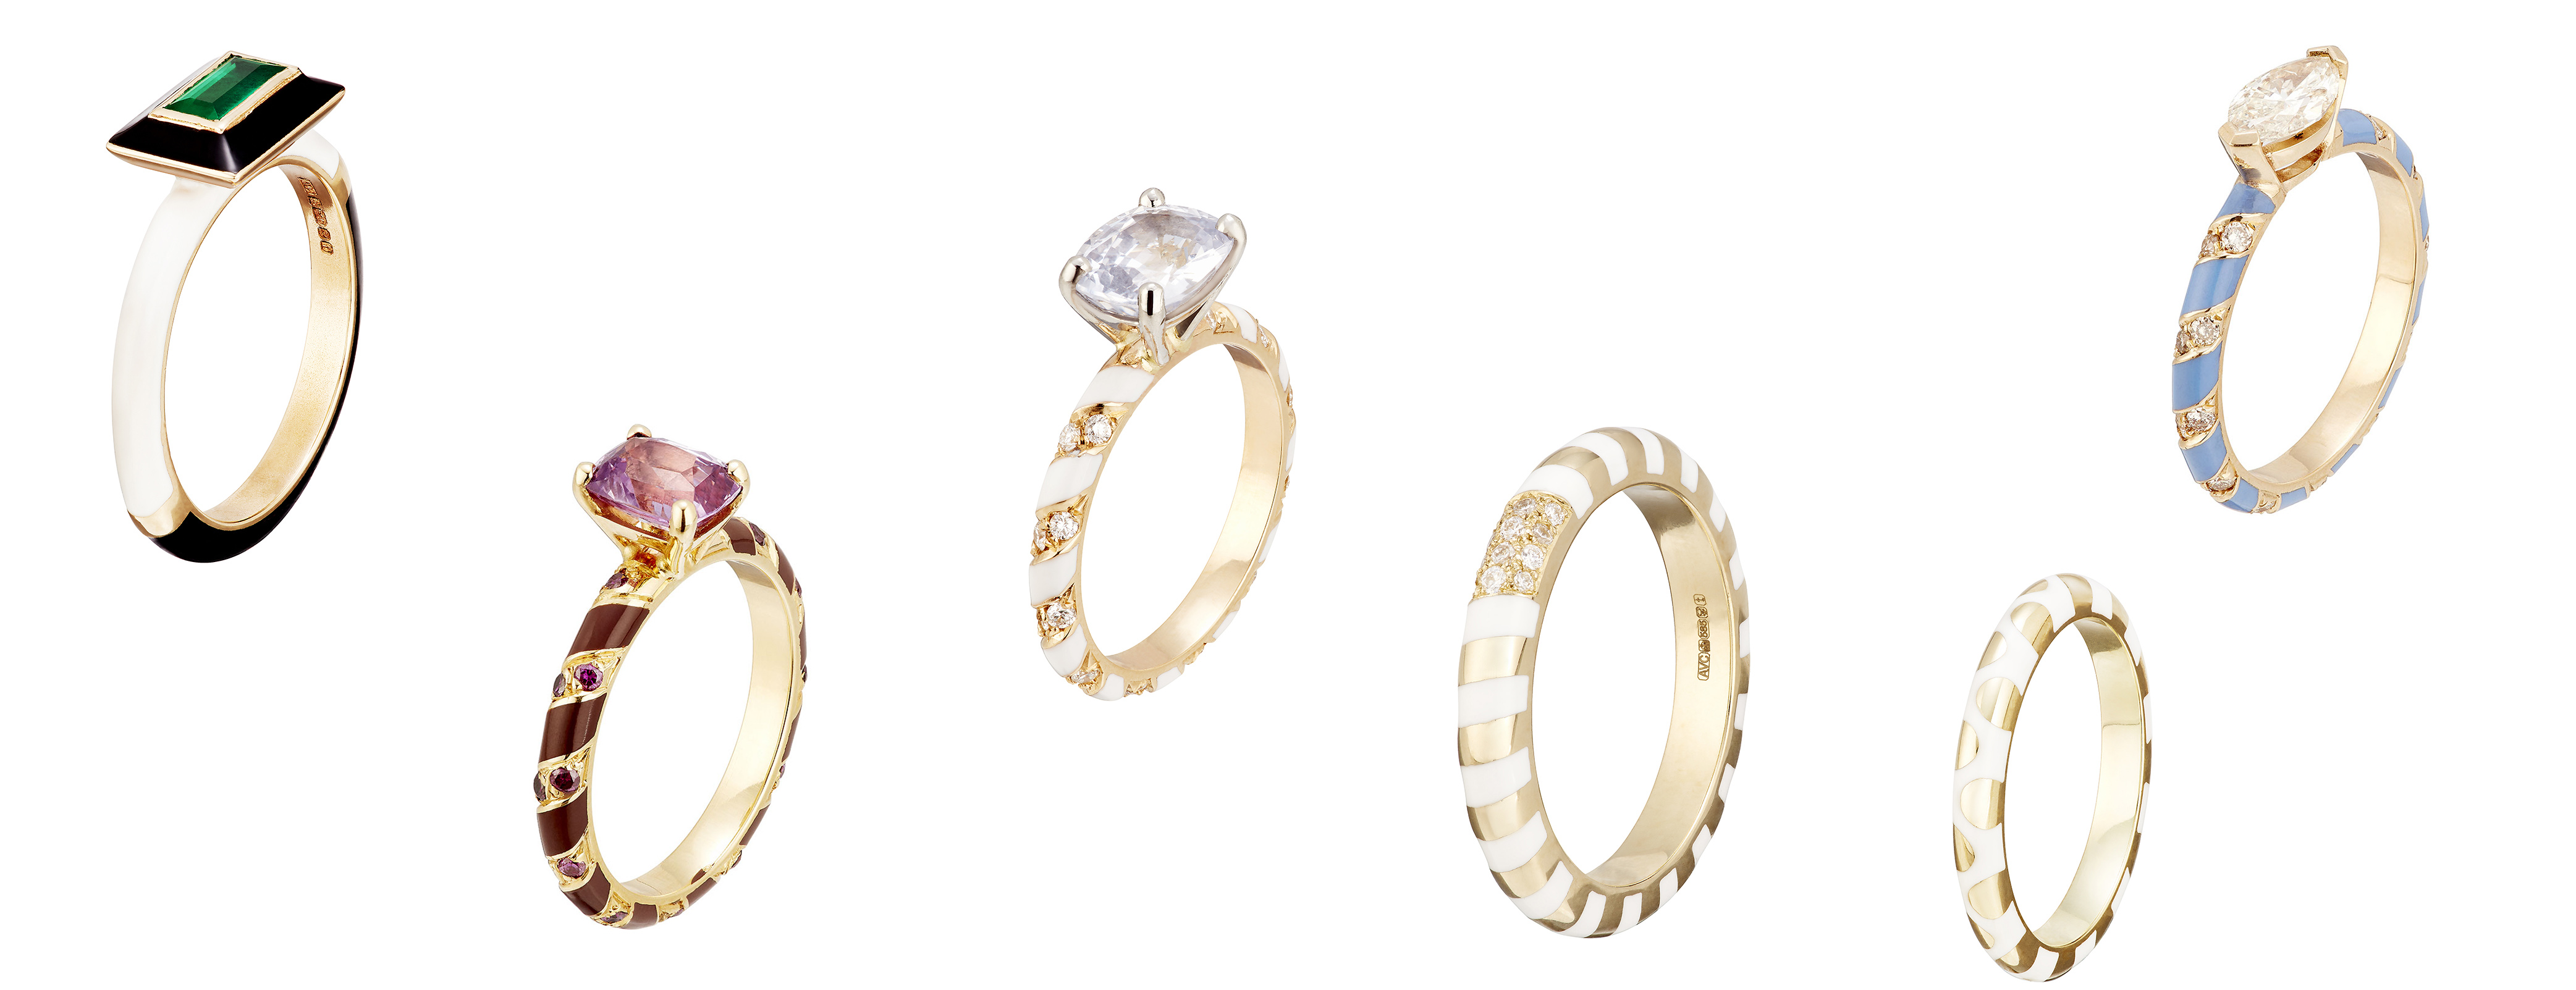 Alice Cicolini engagement rings and wedding bands